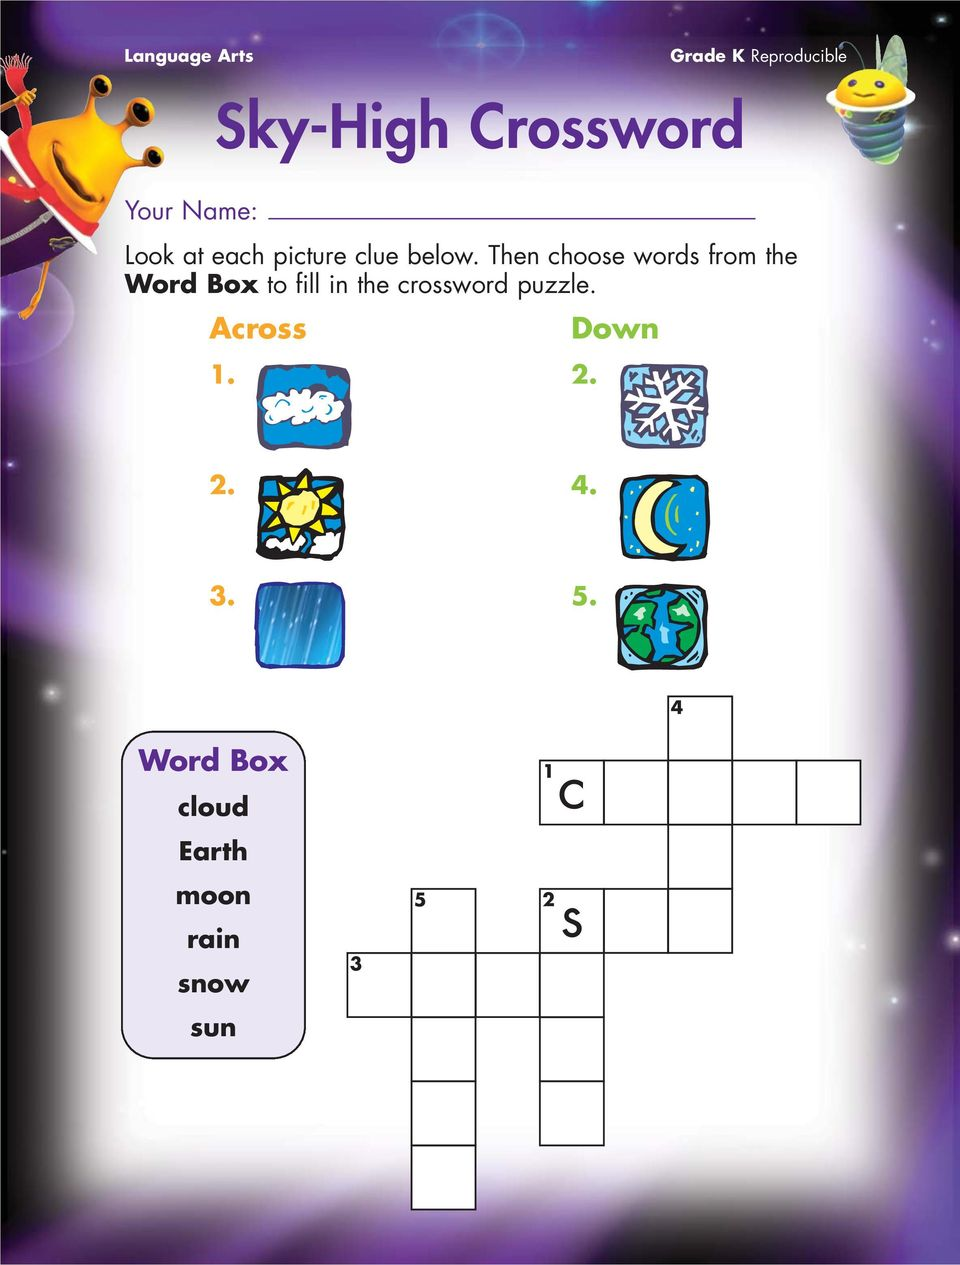 Then choose words from the Word Box to fill in the crossword